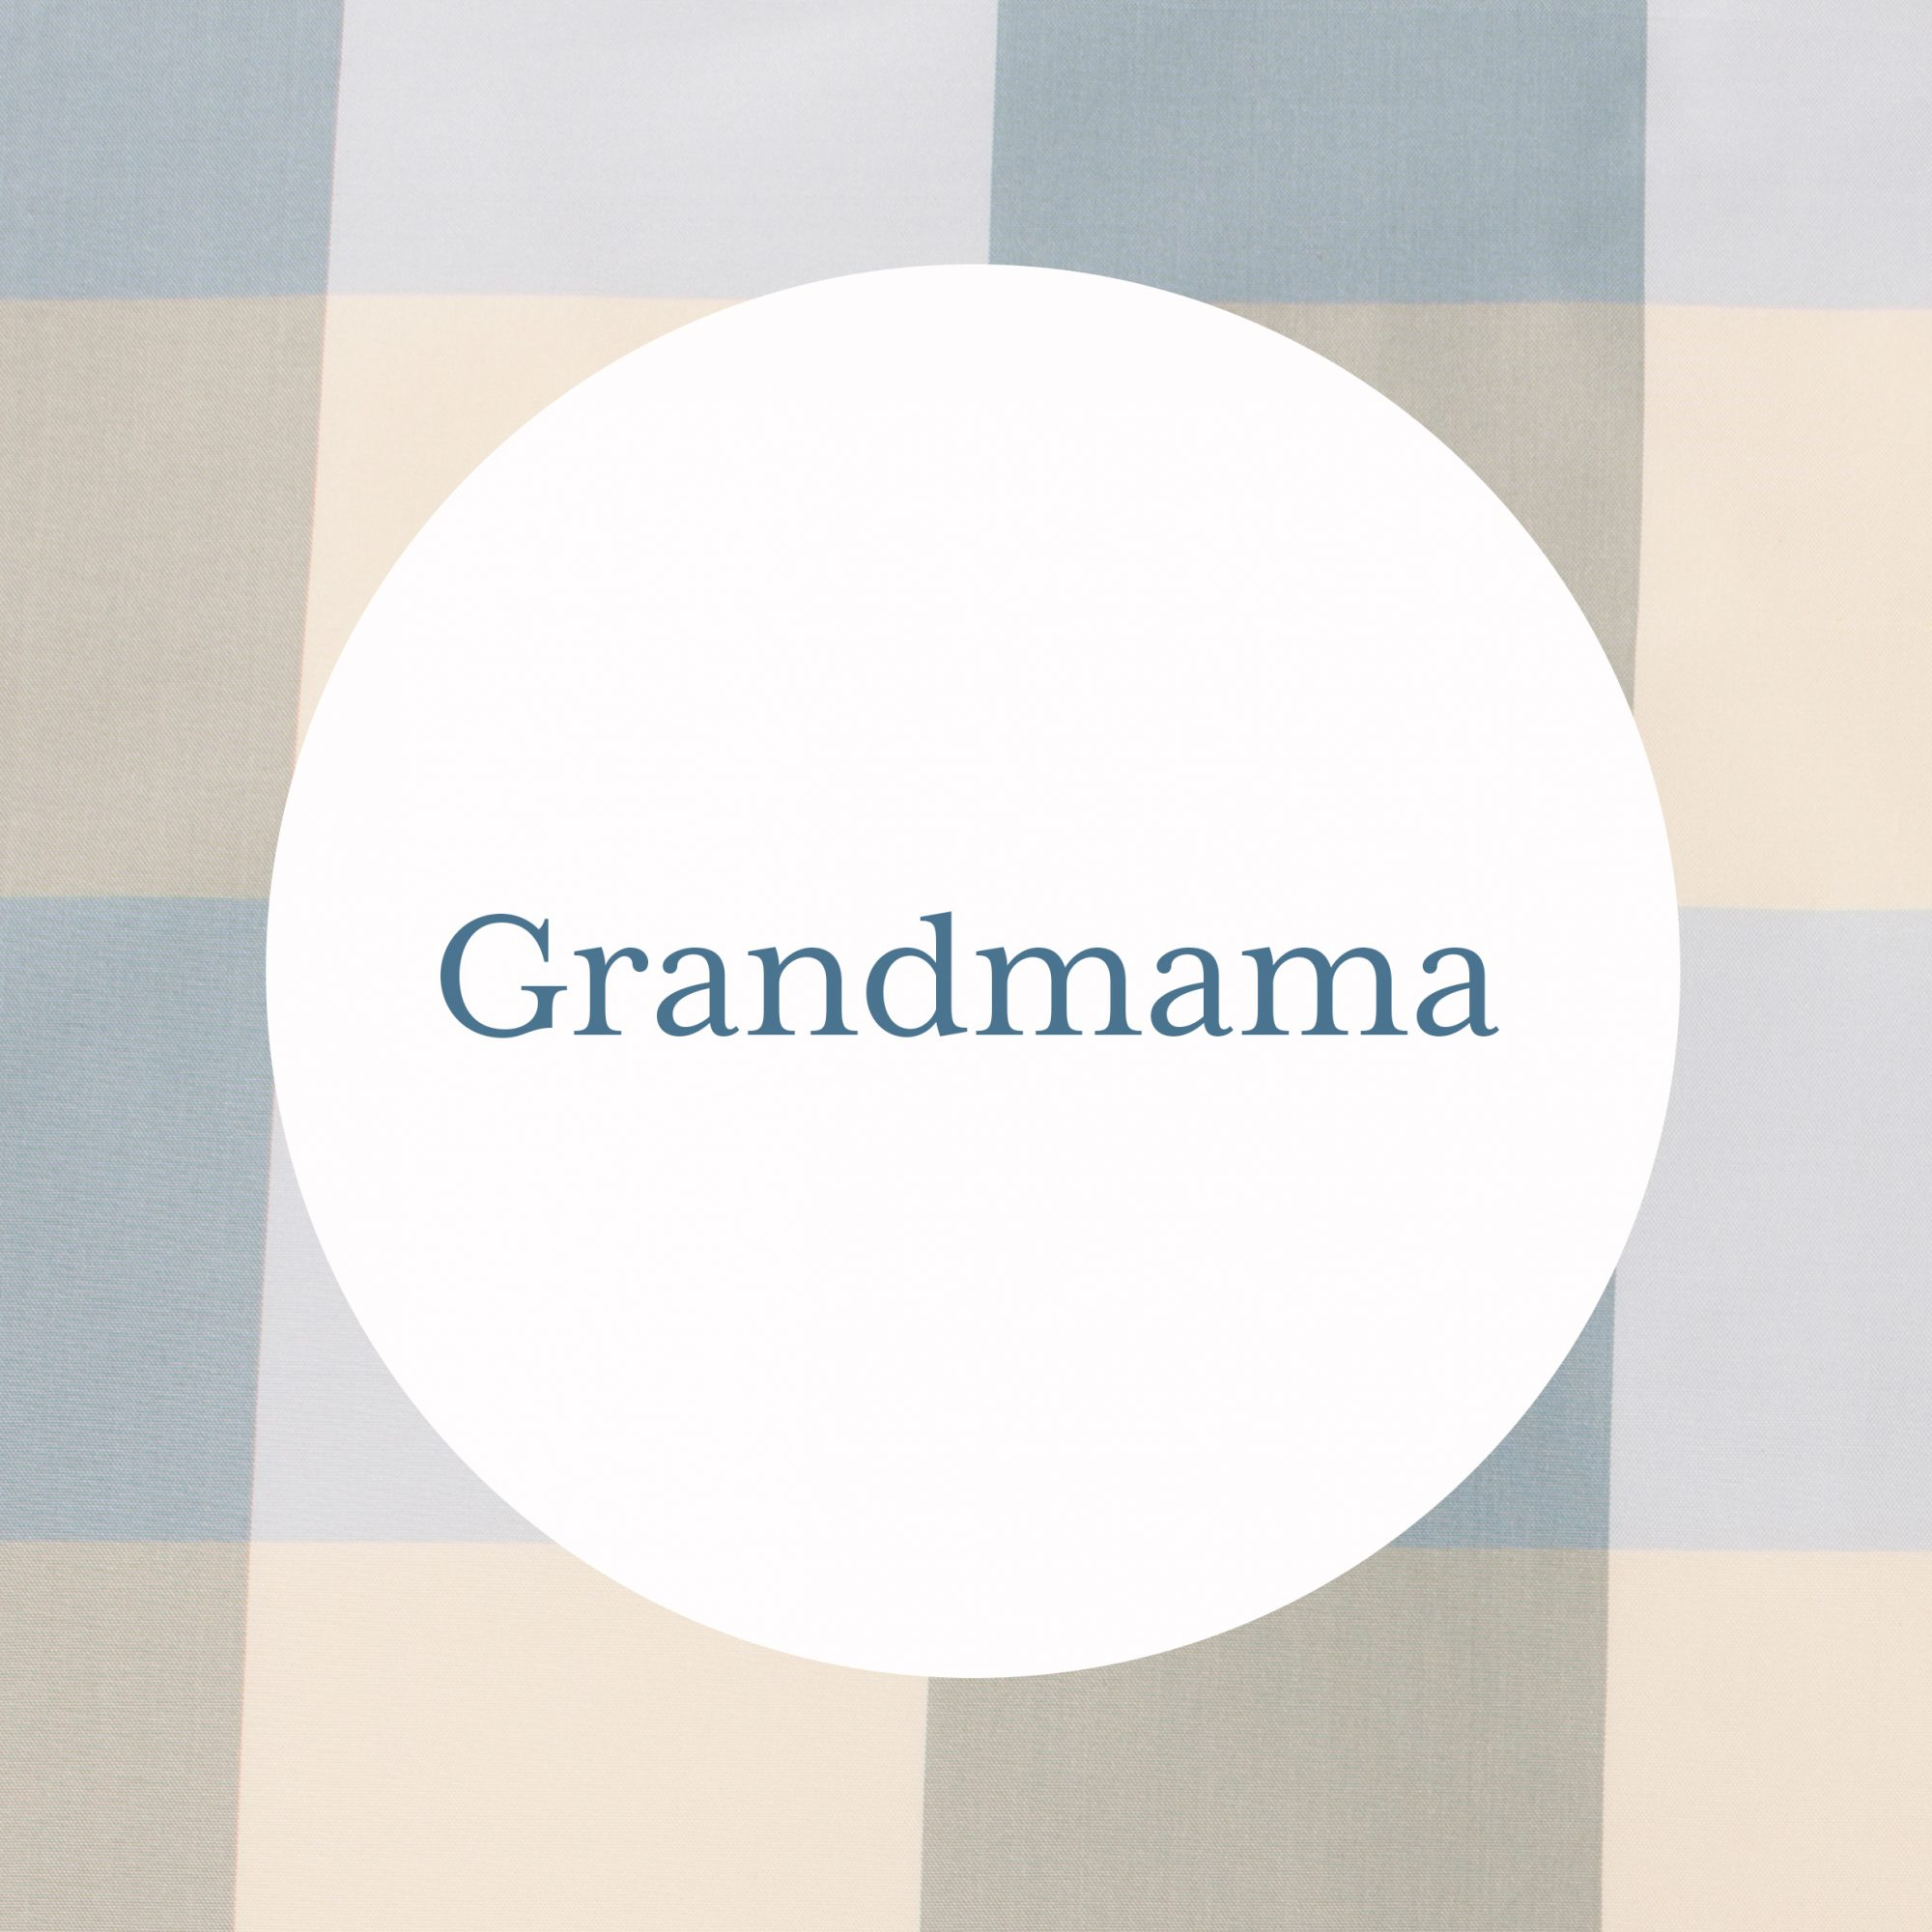 Grandmama Grandmother Name